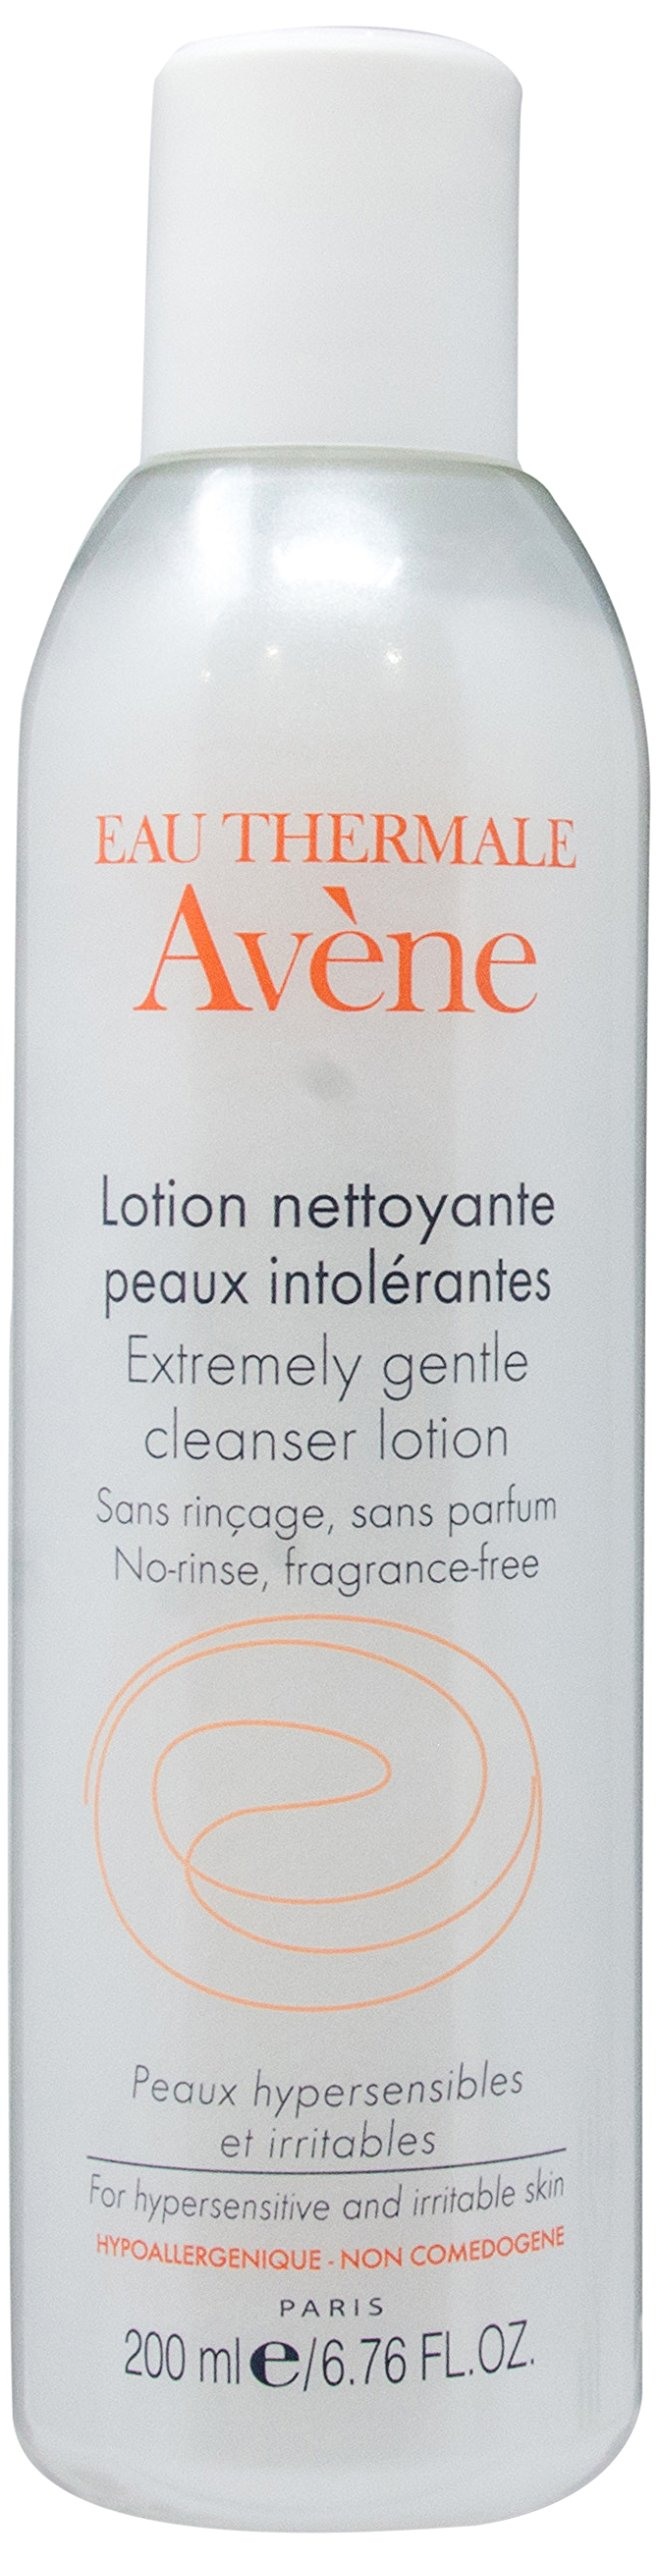 Eau Thermale Avene Extremely Gentle Cleanser Lotion, Face Wash for Sensitive Skin, Fragrance, Soap, Paraben, Oil, Soy, Gluten Free, 6.76 oz. by Eau Thermale Avène